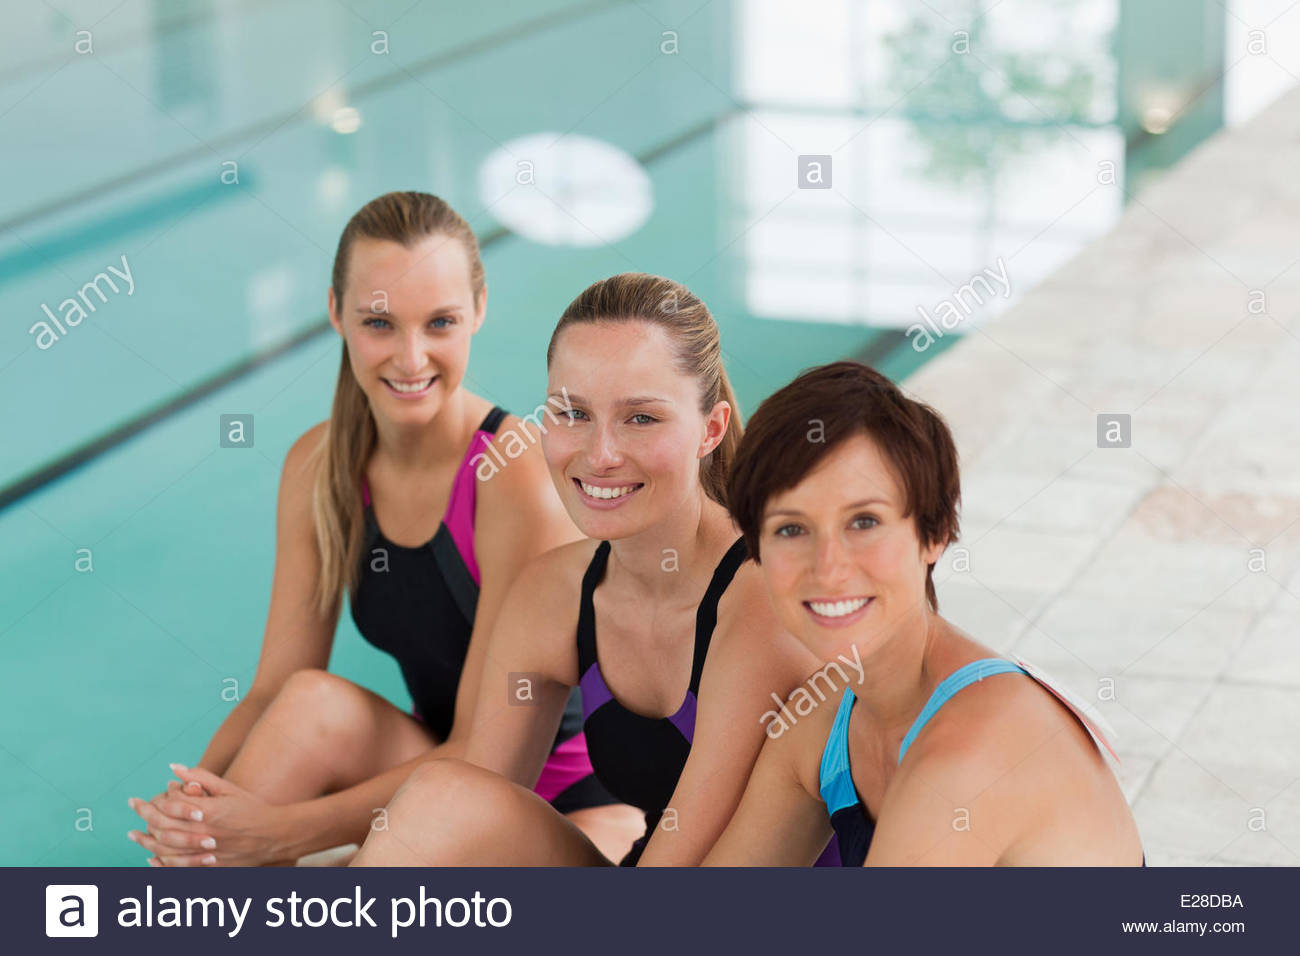 Smiling young women sitting at edge of swimming pool - Stock Image